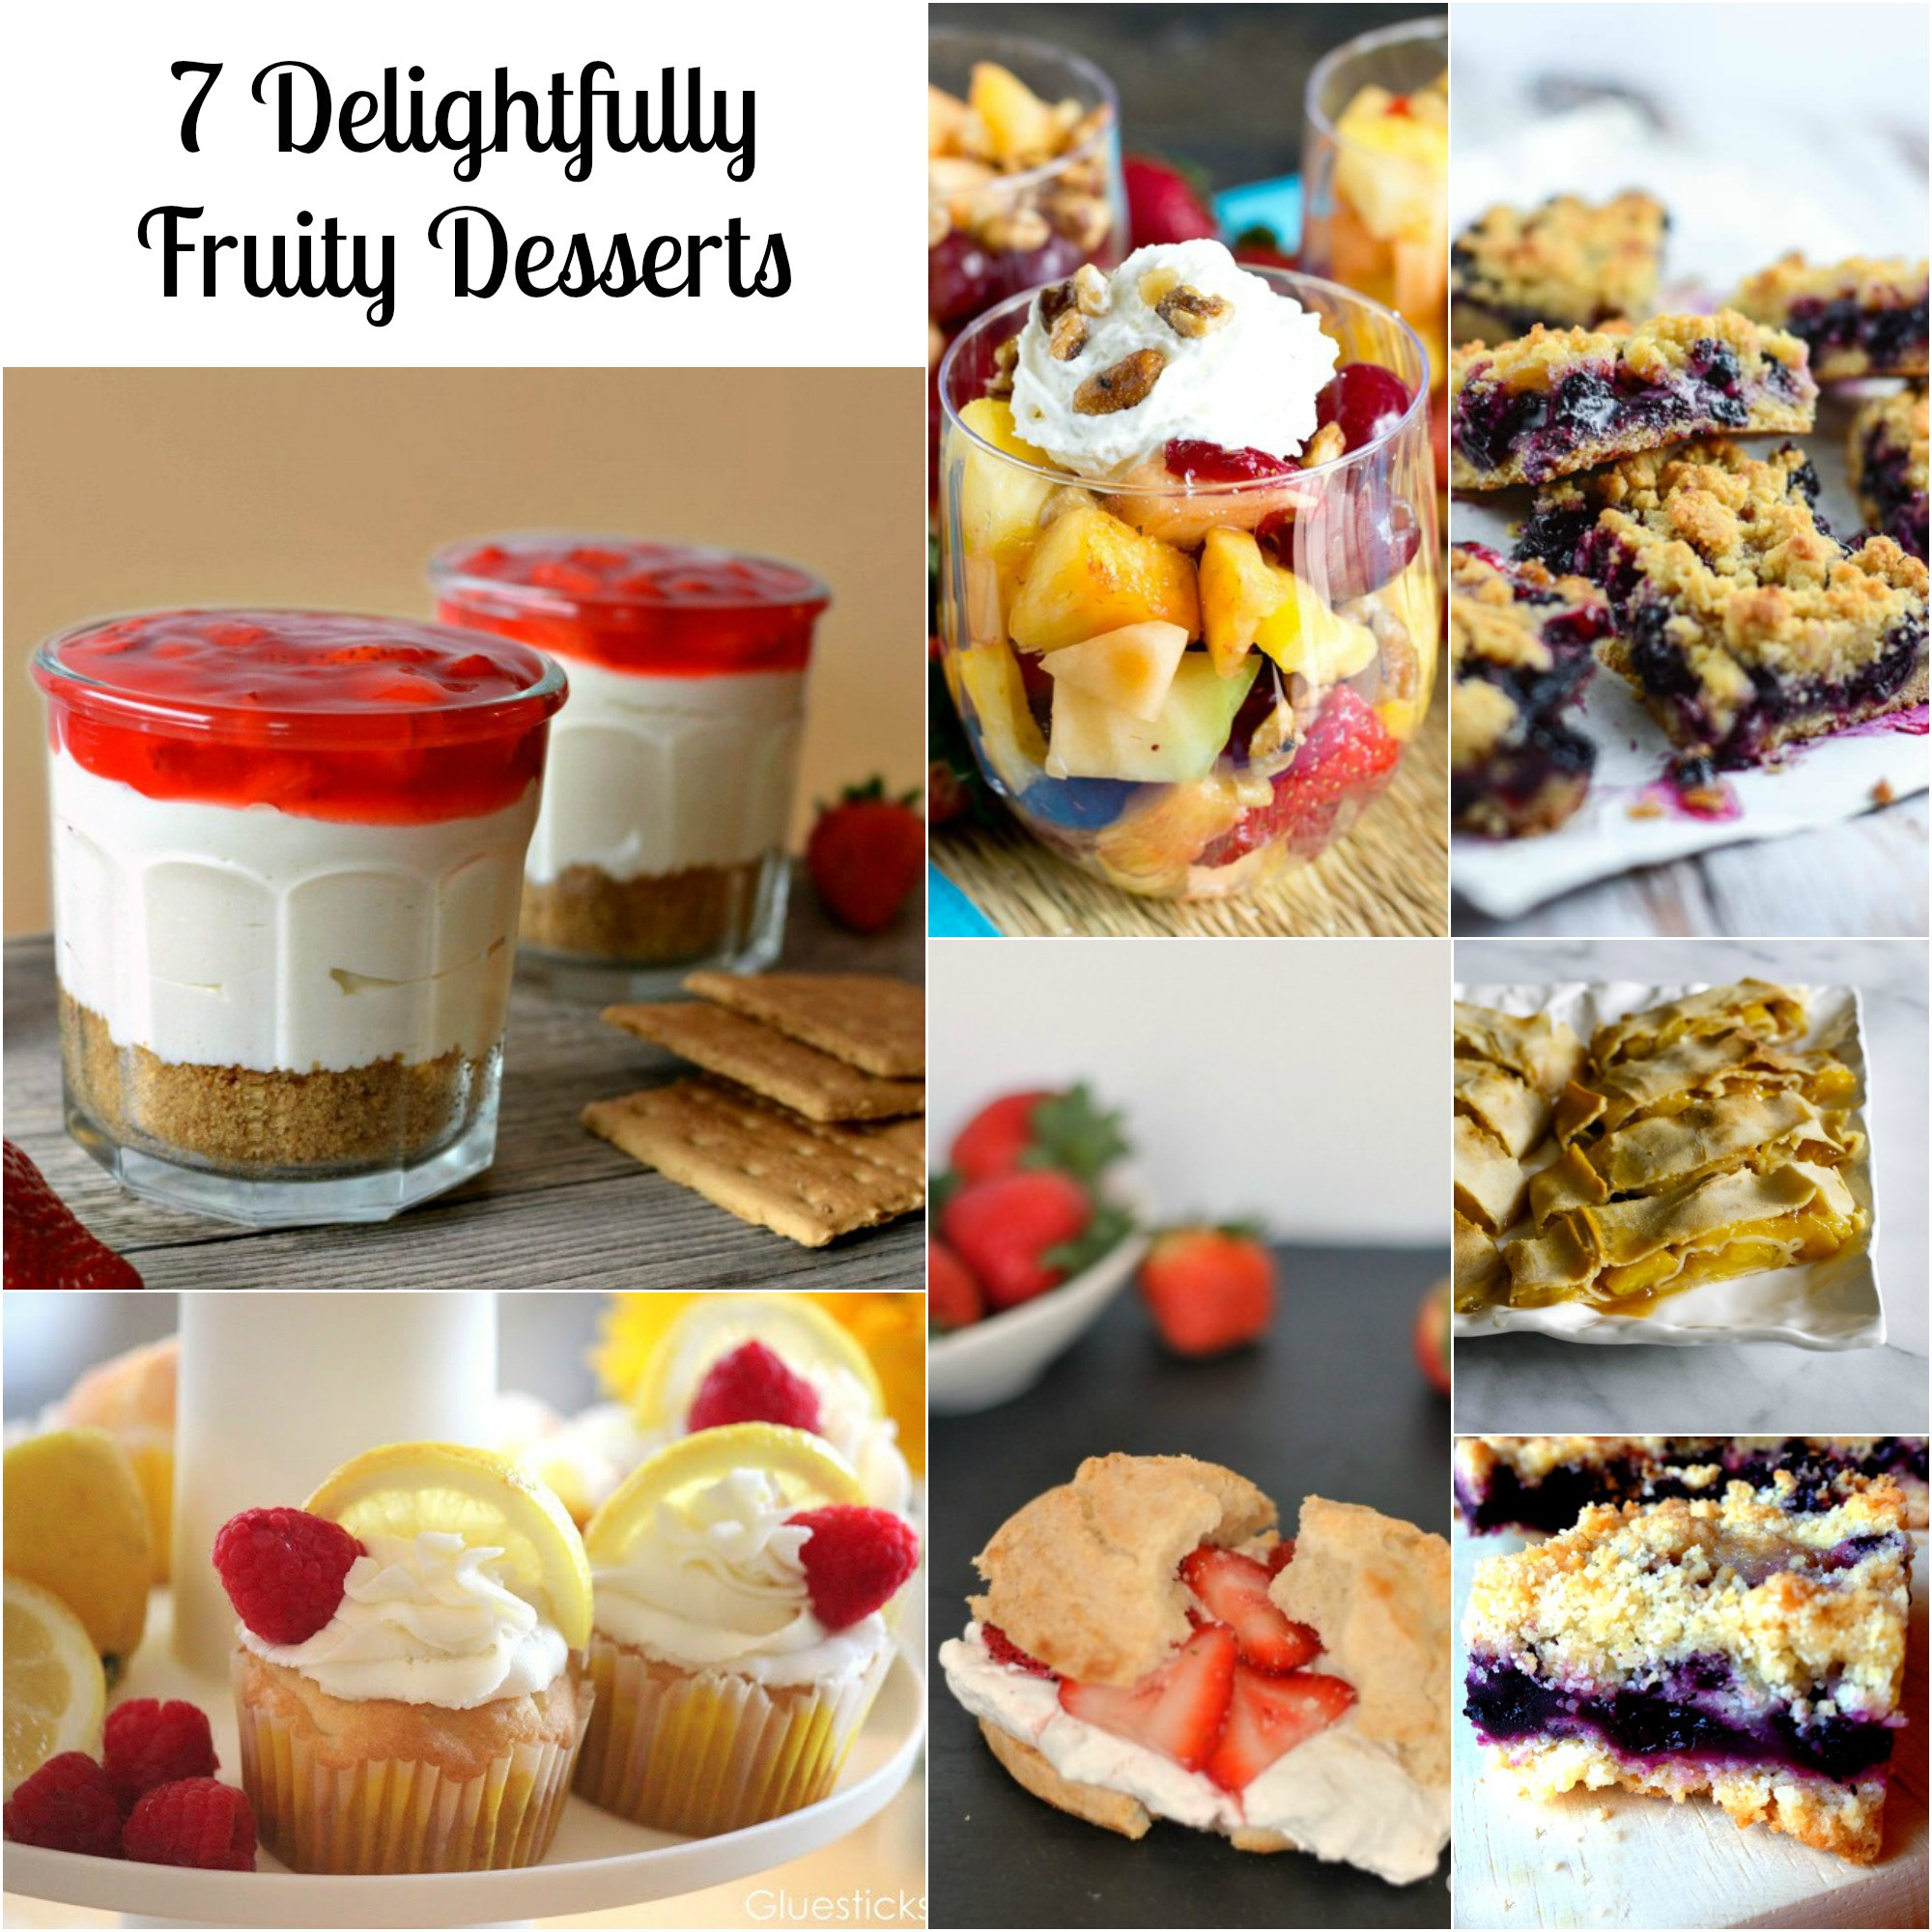 Summer Recipes Desserts  7 Summer Dessert Recipes You Have to Try SoFabFood